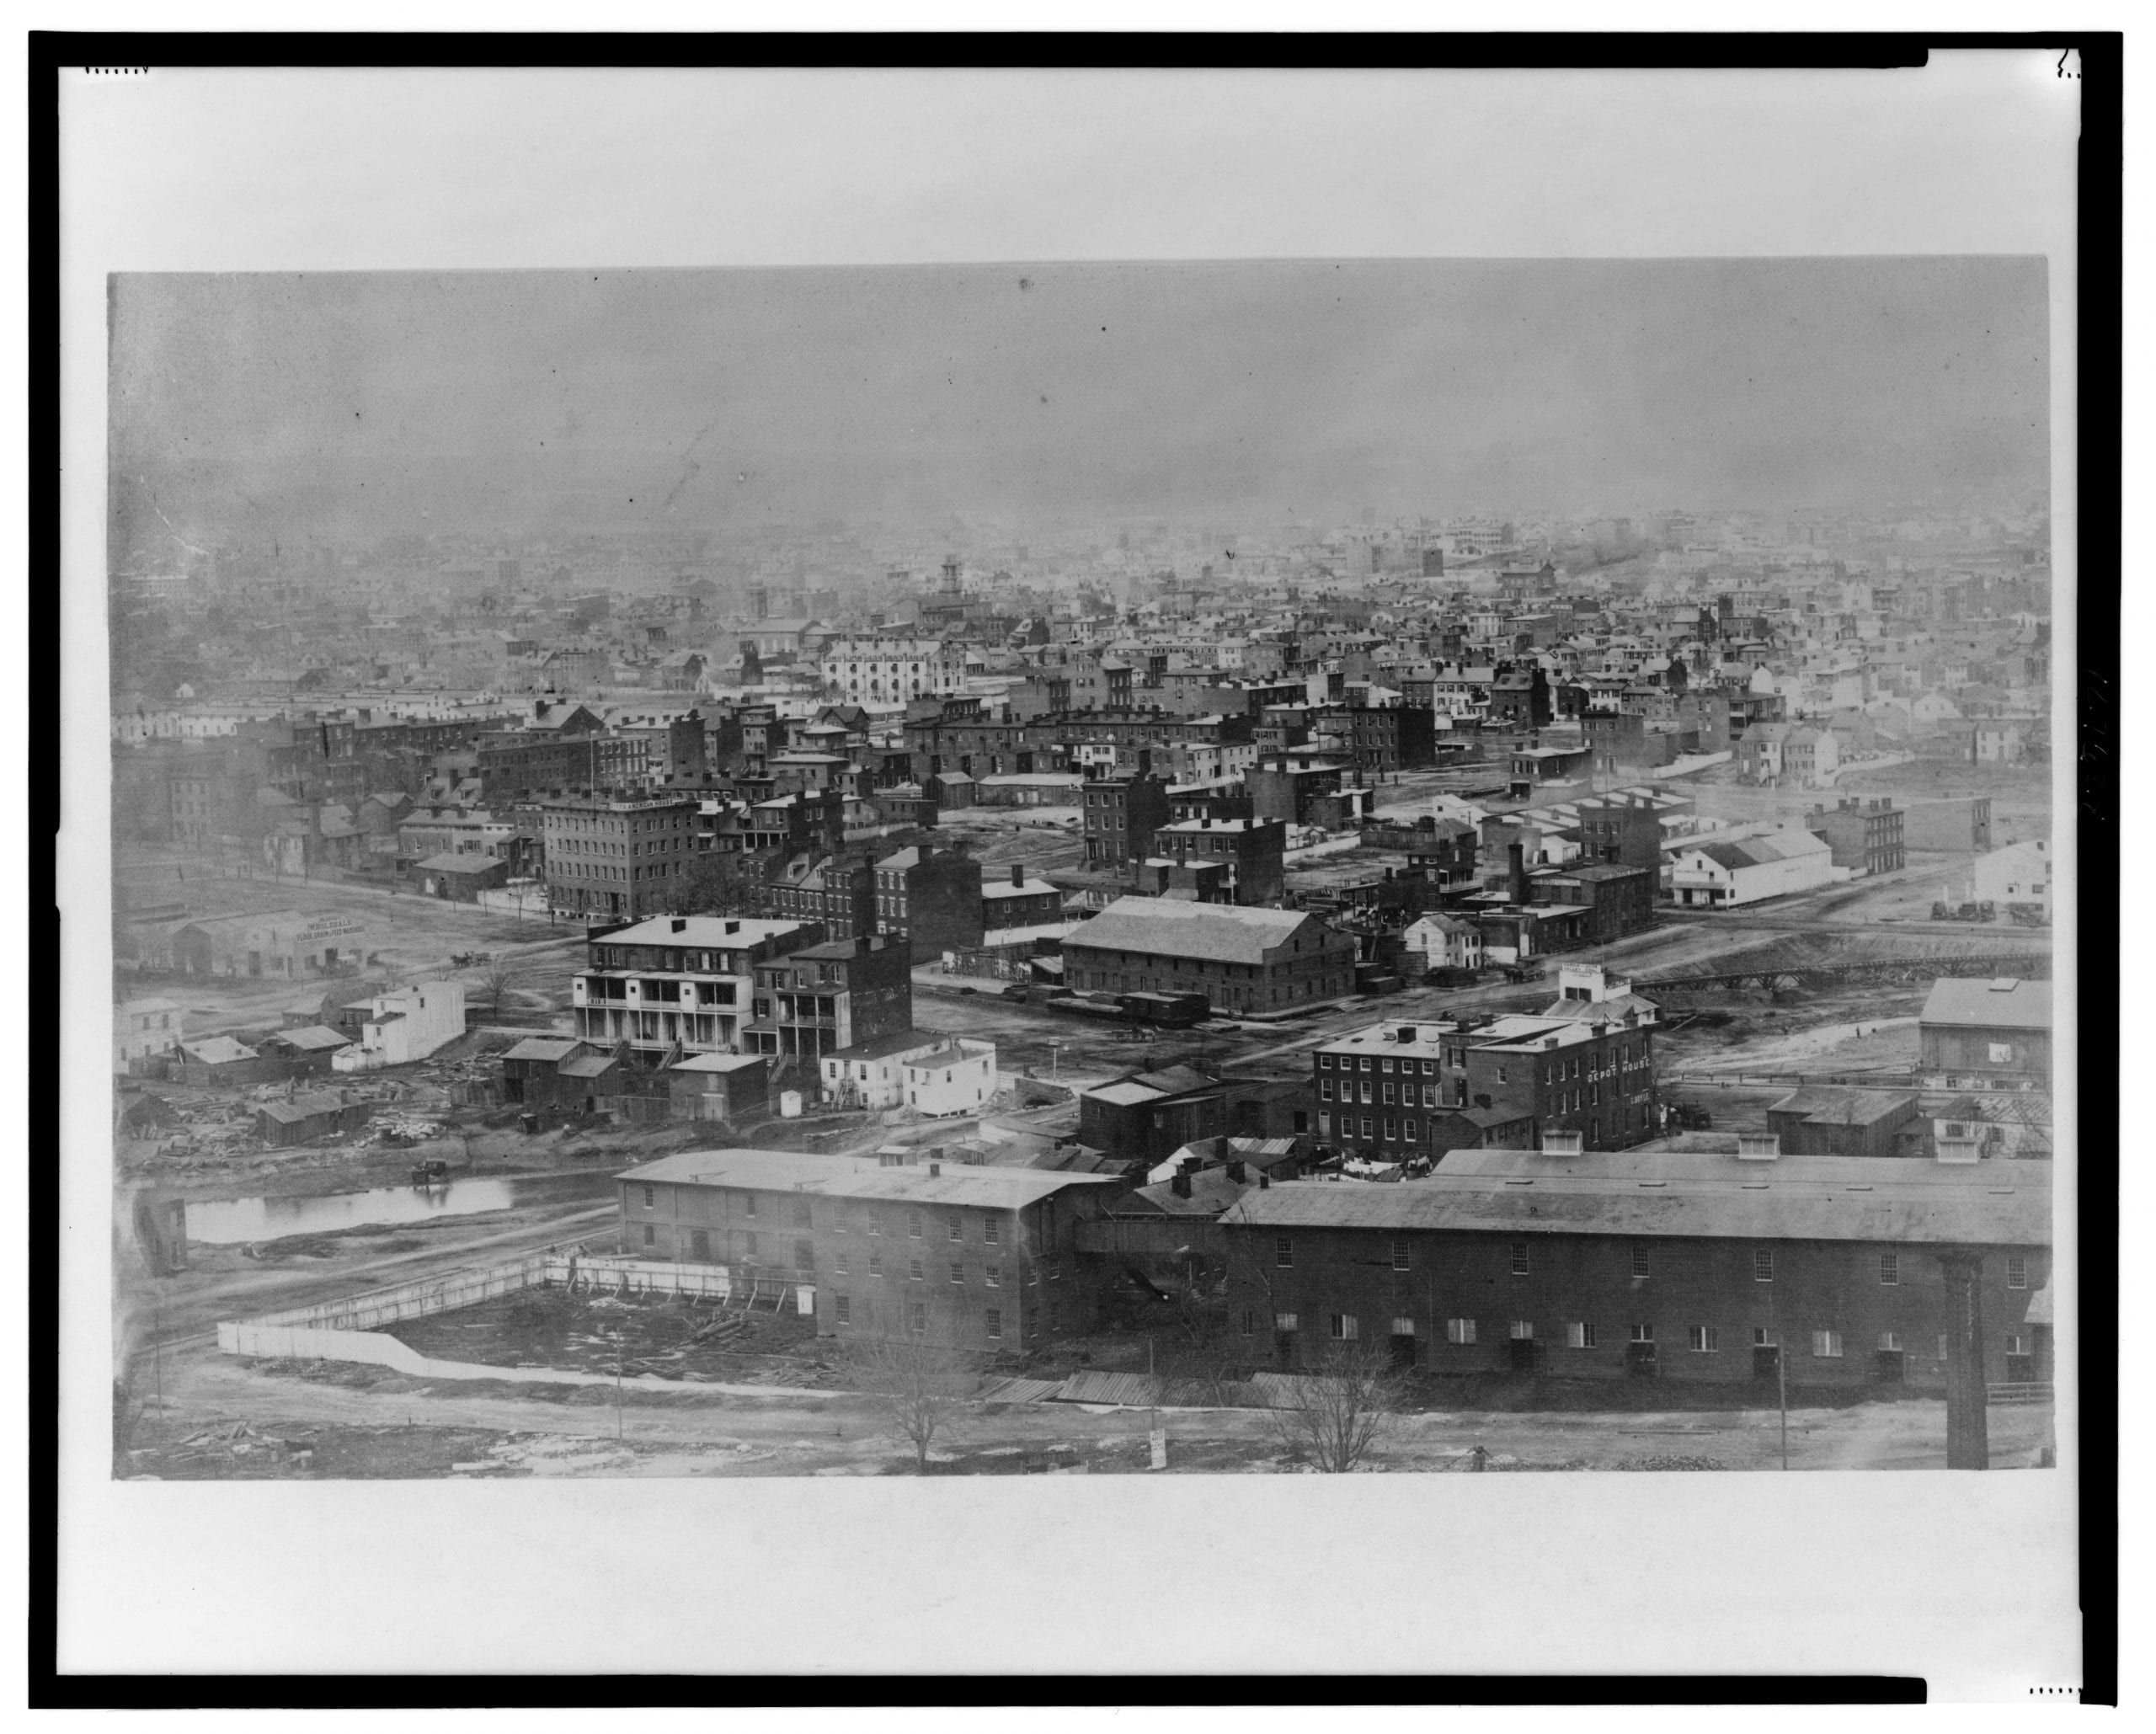 Northwest view with 1st, B, C, D streets, and Indiana Ave. in the foreground; view includes the Washington Jail, Aldrich's Wholesale Flour, Grain & Feed Warehouse, Dyers American House, Shamokin & Lykins Valley Coal (Wood & Coal), Depot House, C. Boyle, and Door, Sash & Blind Factory.